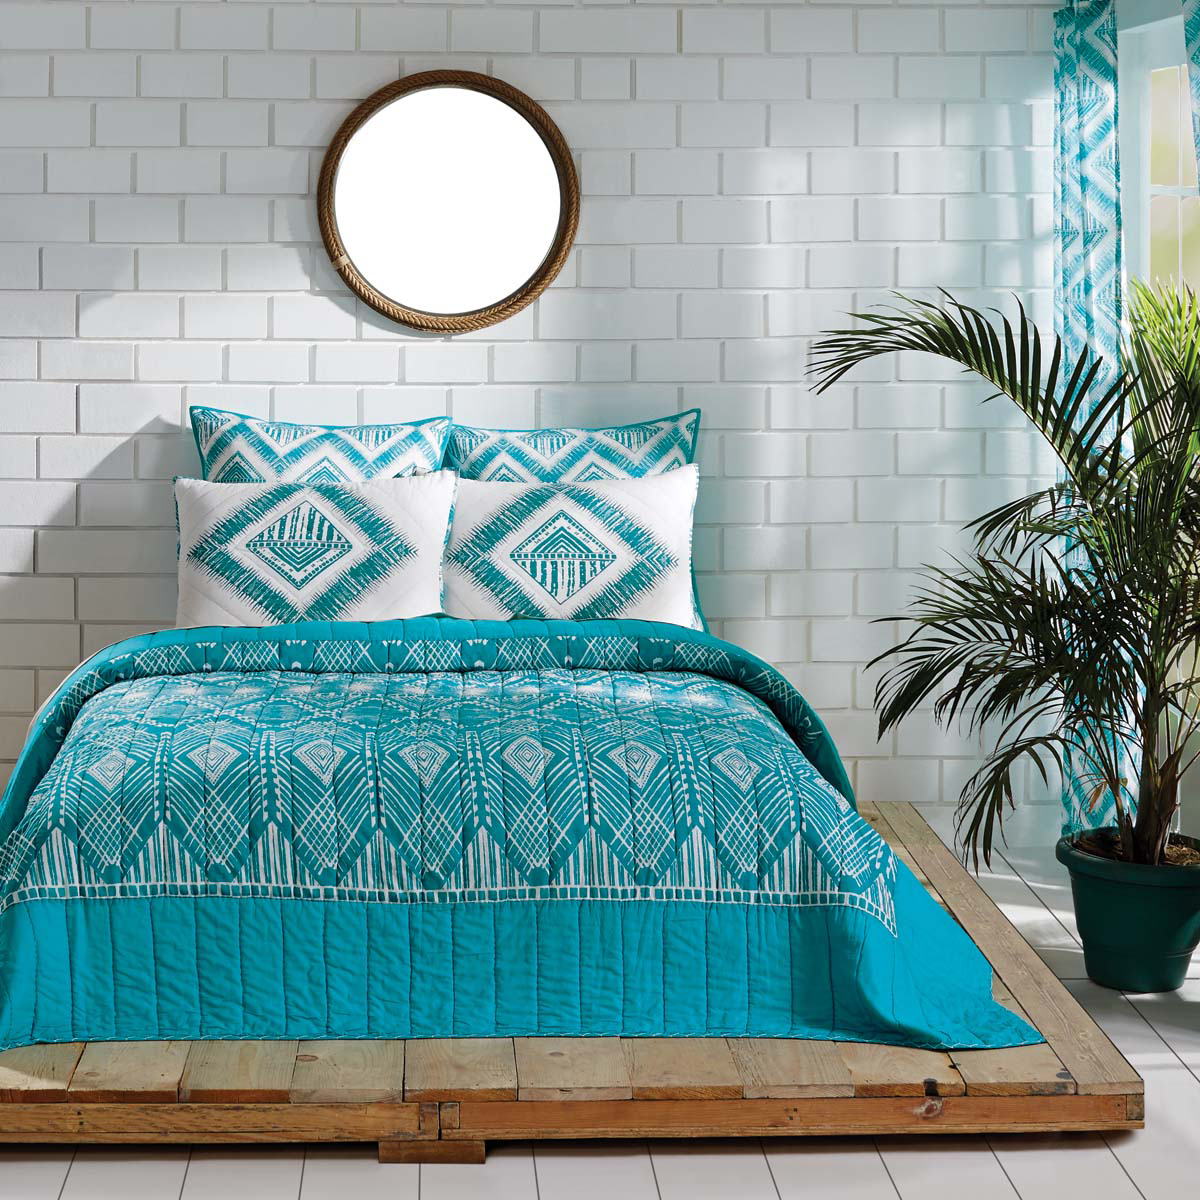 3-pc Queen Karina Quilt and Shams Set - Teal/Marshmallow - VHC Brands